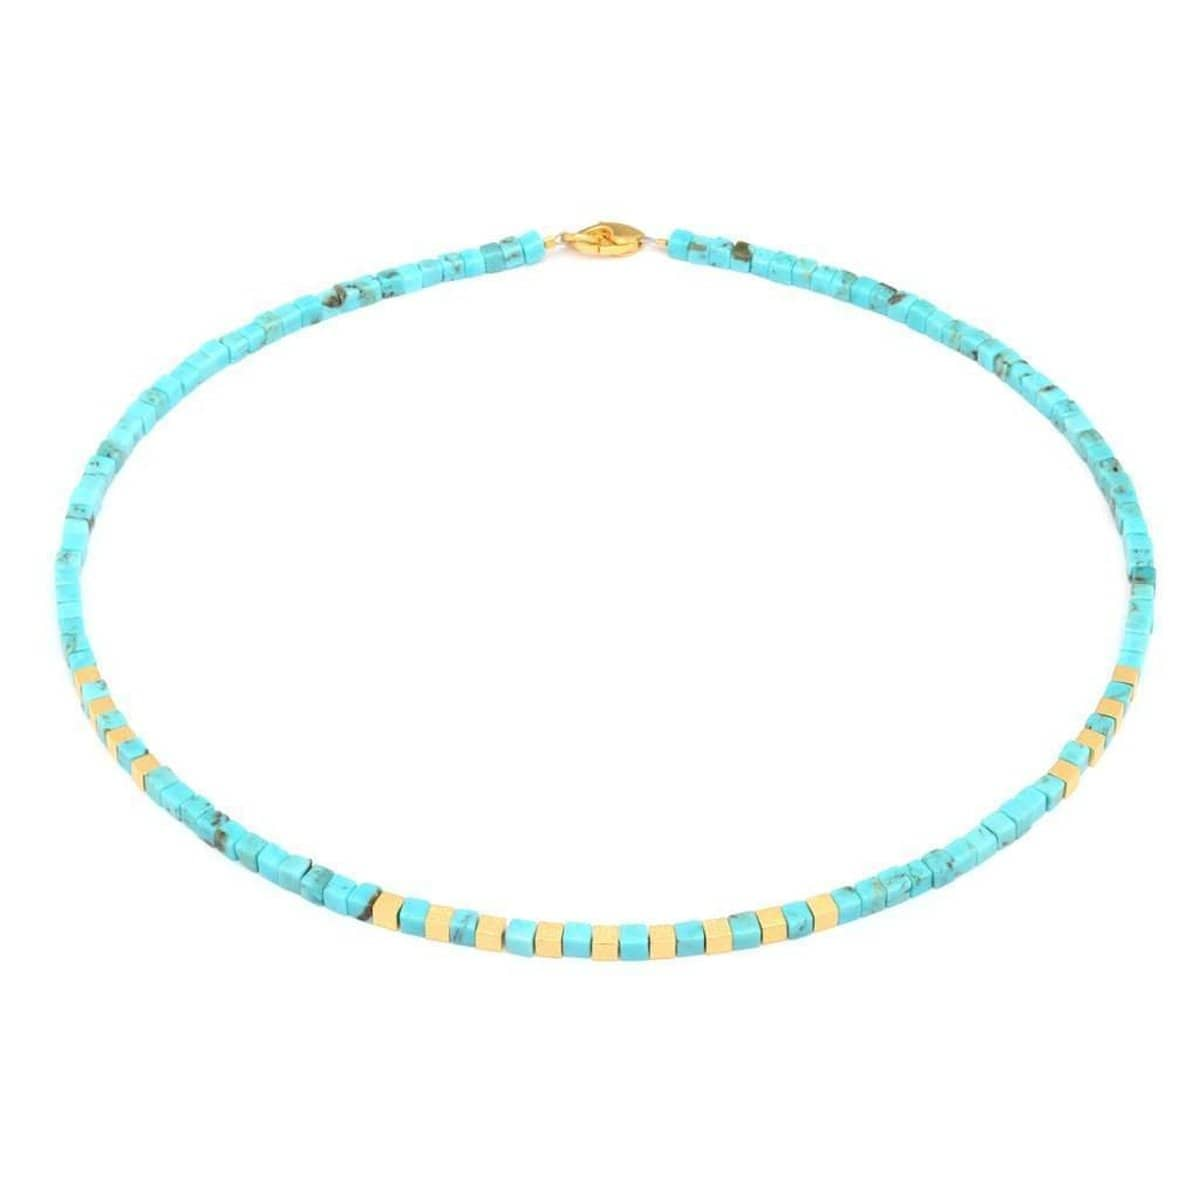 Cubis Turquoise Necklace - 84446256-Bernd Wolf-Renee Taylor Gallery